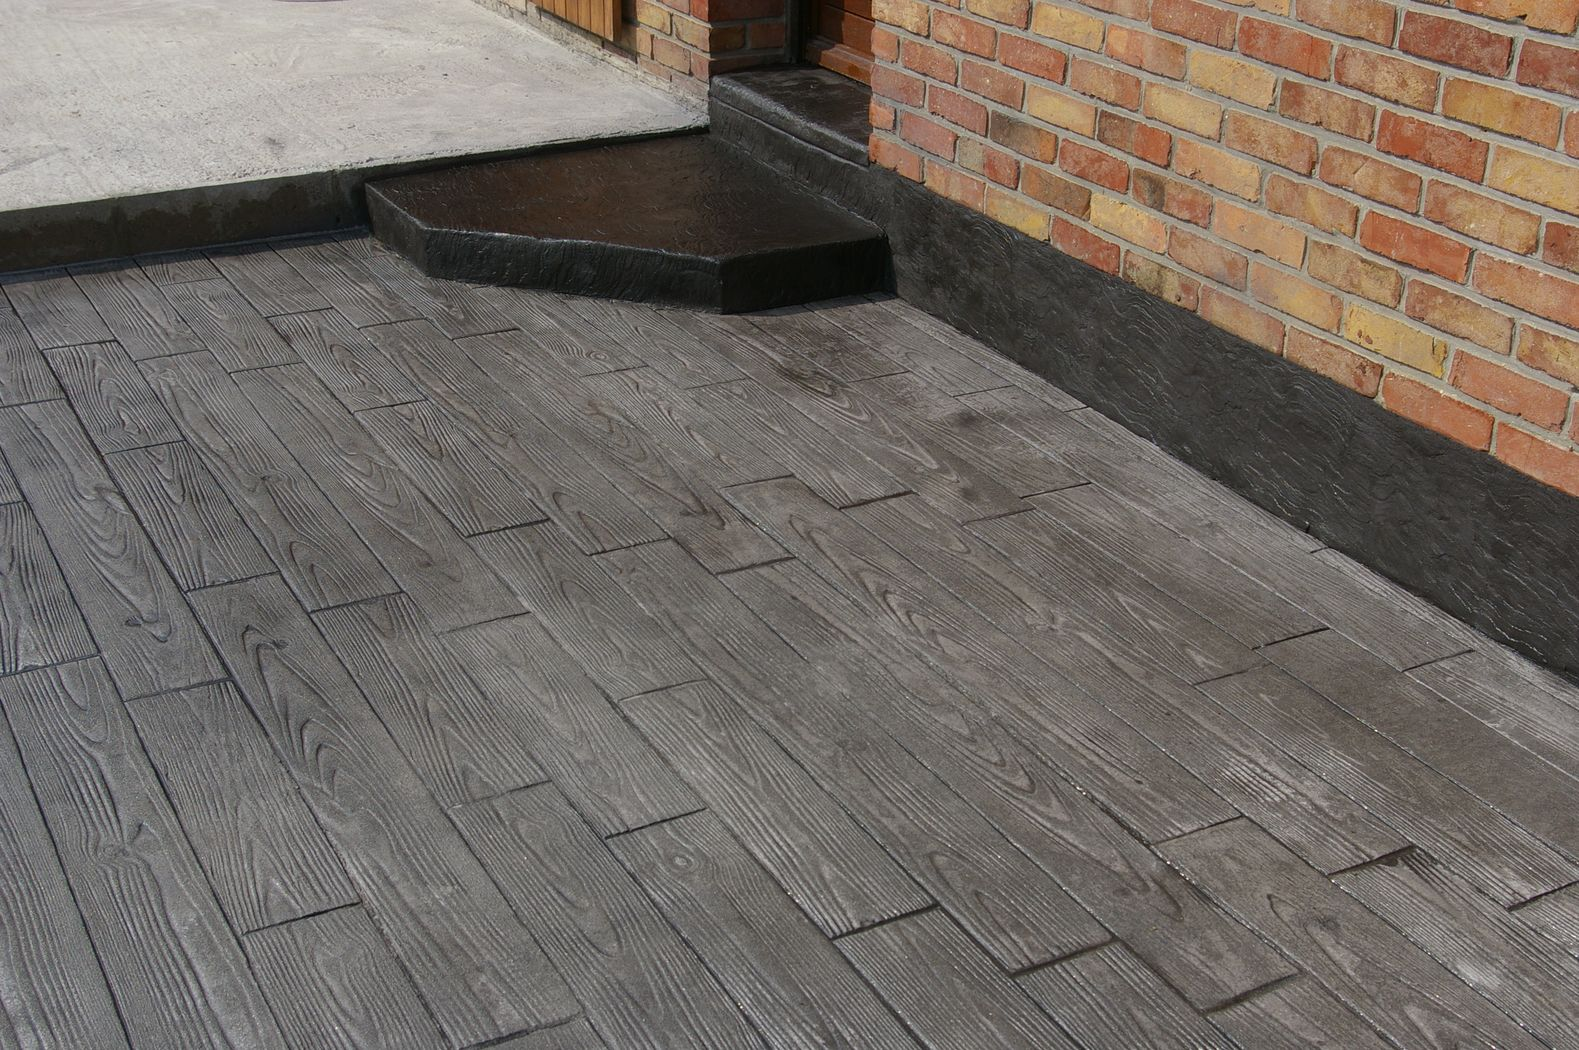 Terrasse imitation bois awesome leroy merlin carrelage imitation bois excellent dcoration for - Leroy merlin essonne ...